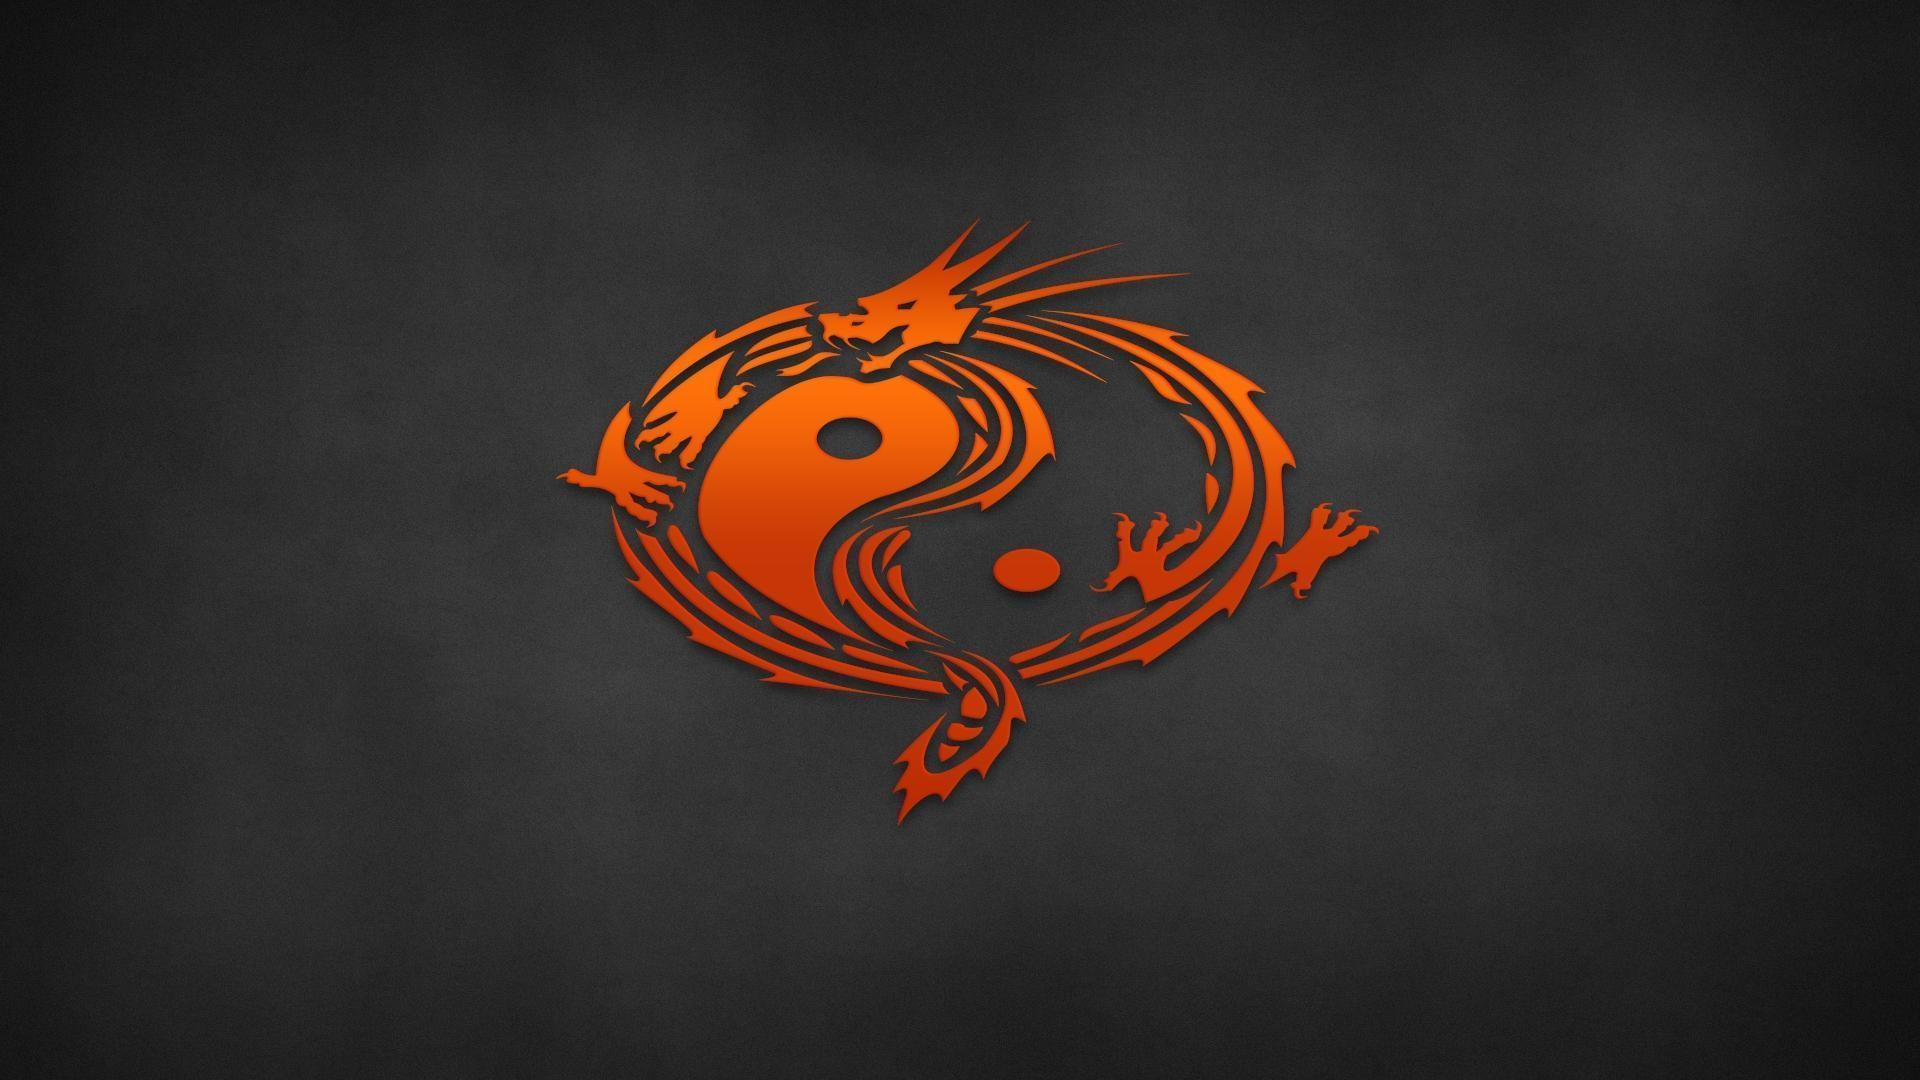 Res: 1920x1080, Ying Yang HD Desktop Wallpapers for Widescreen, High Definition .